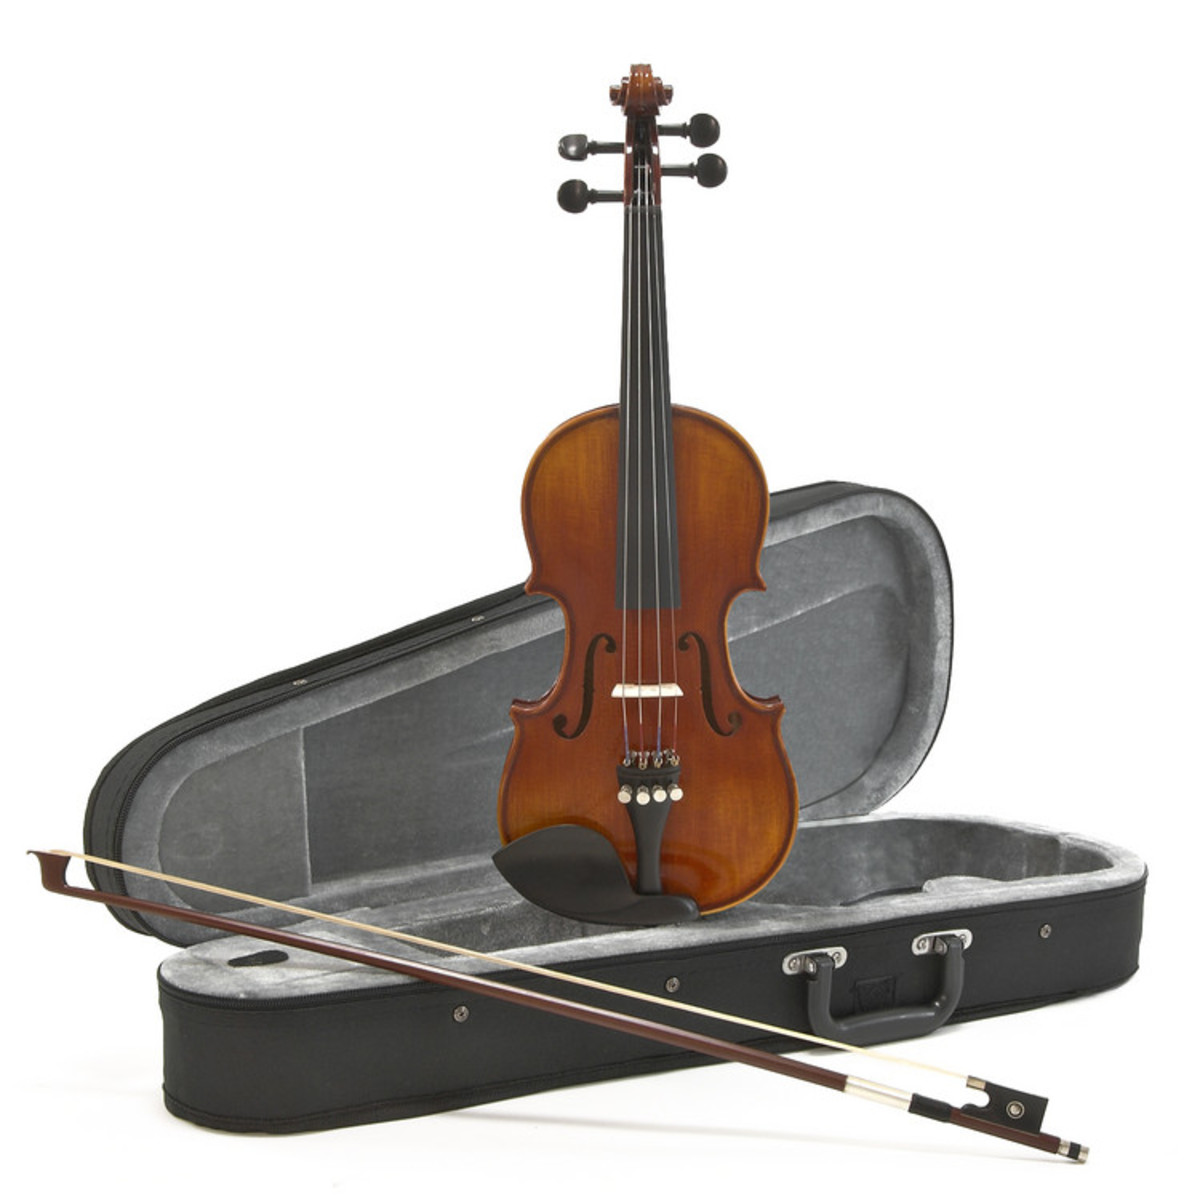 Image of Deluxe 1/4 Size Violin Antique Fade by Gear4music